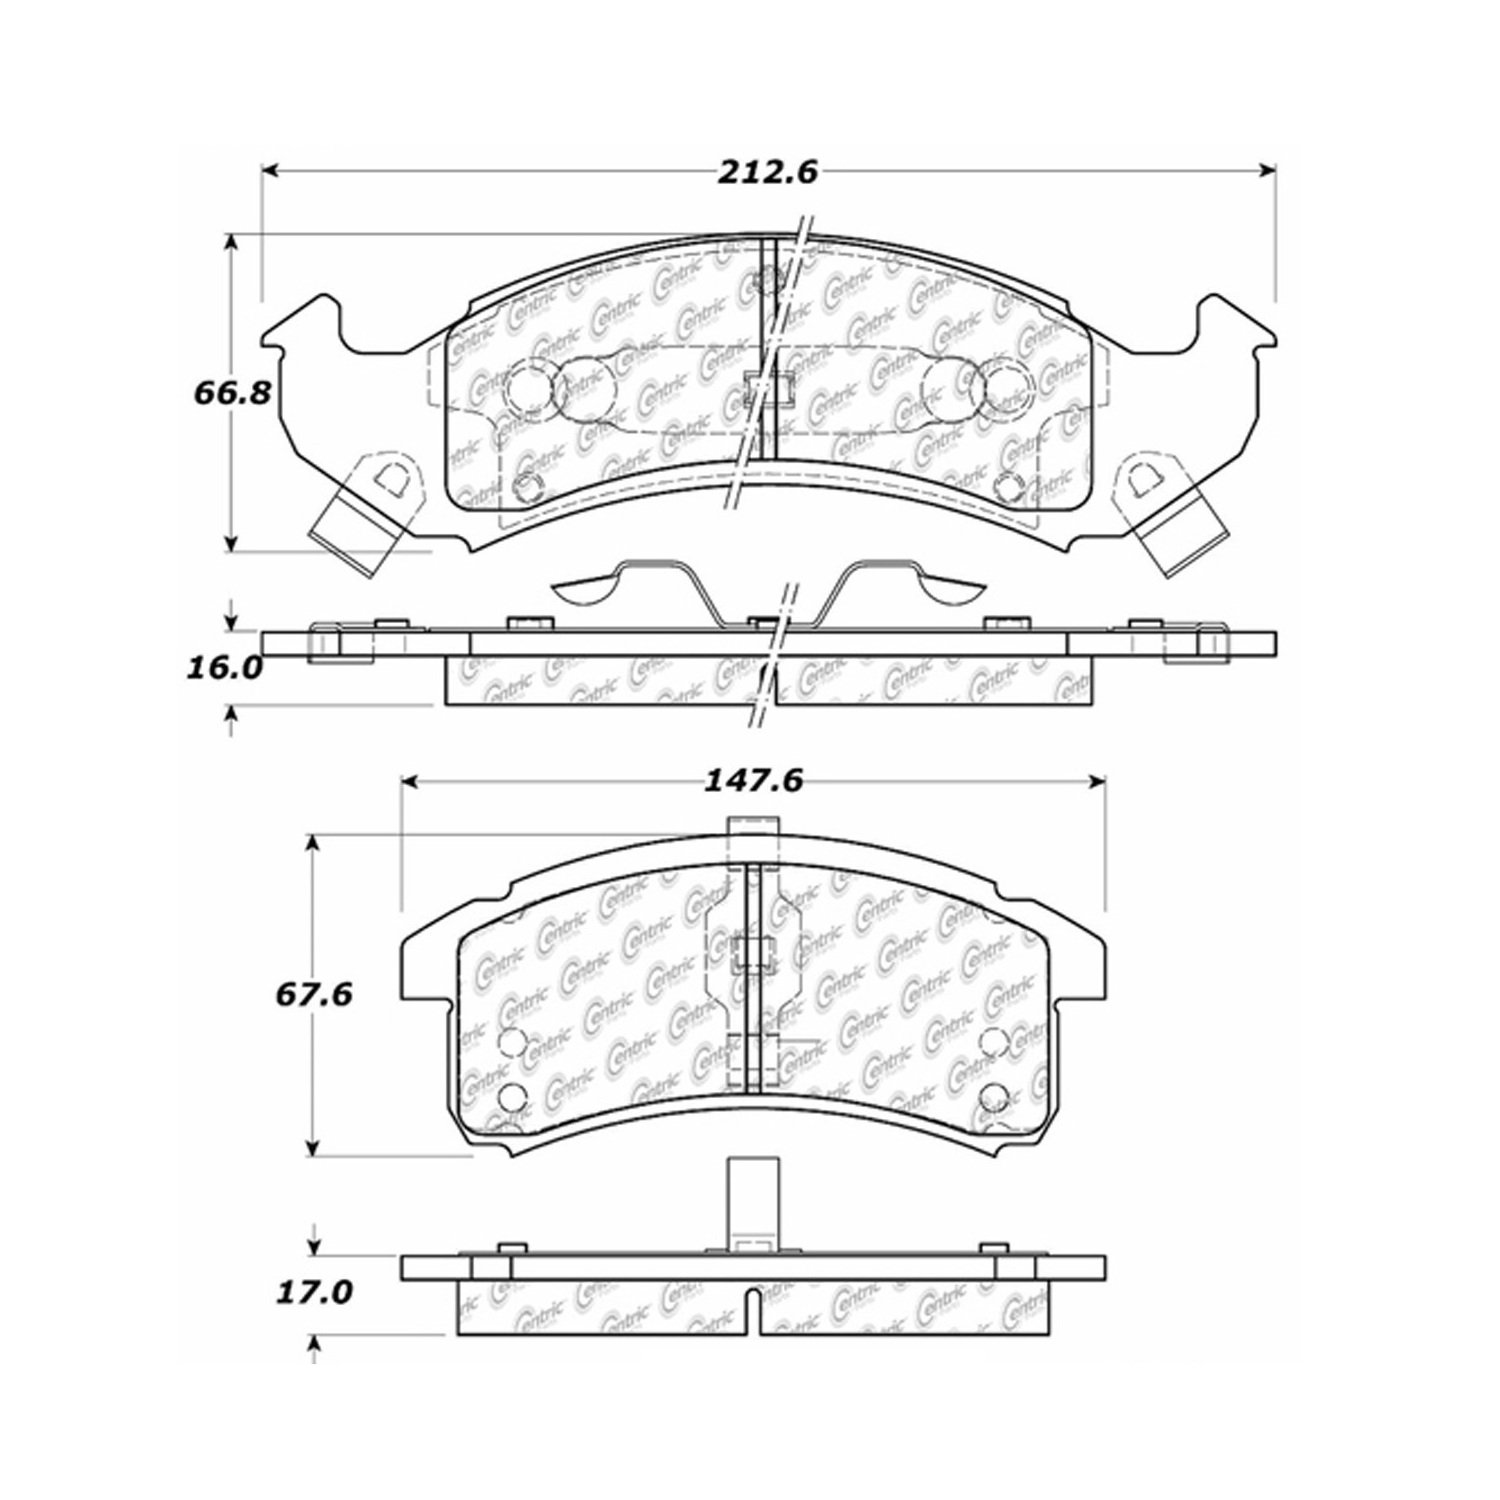 Brake Pads Centric Parts 102.05050 102 Series Semi Metallic Standard Brake Pad Replacement Parts